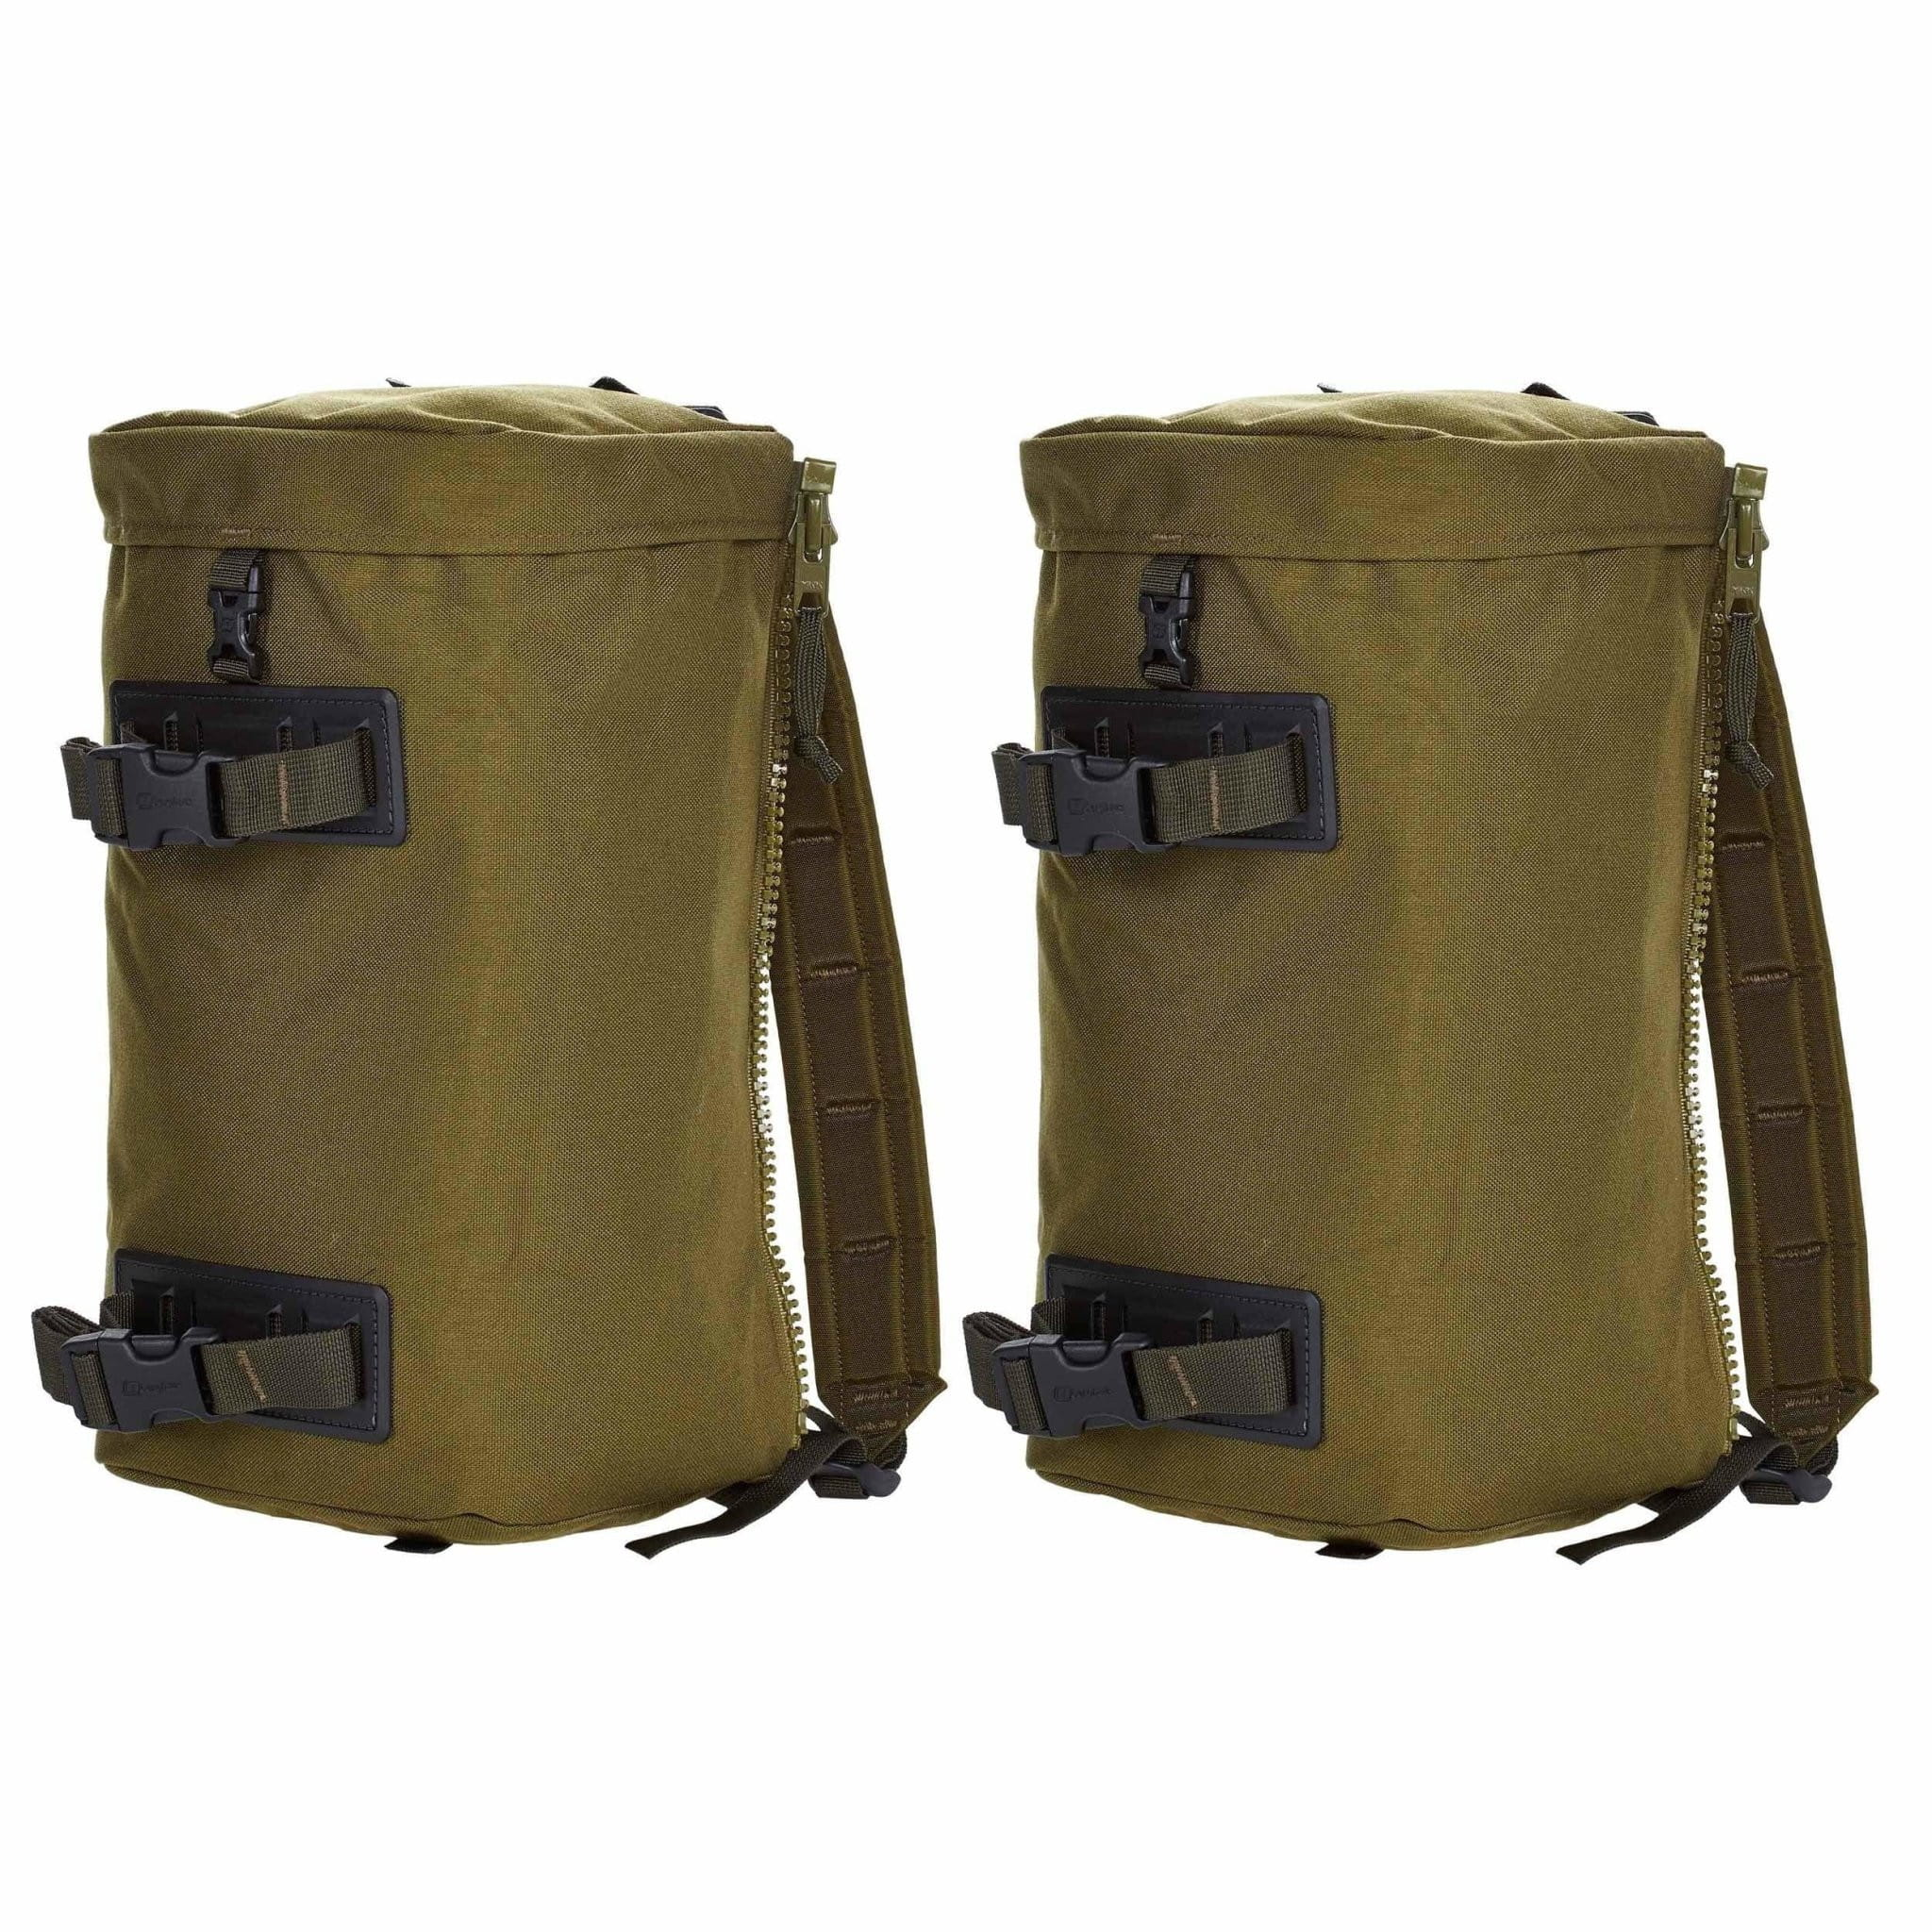 Berghaus MMPS Pockets II Large 2x Olive 15 l - CHK-SHIELD | Outdoor Army - Tactical Gear Shop